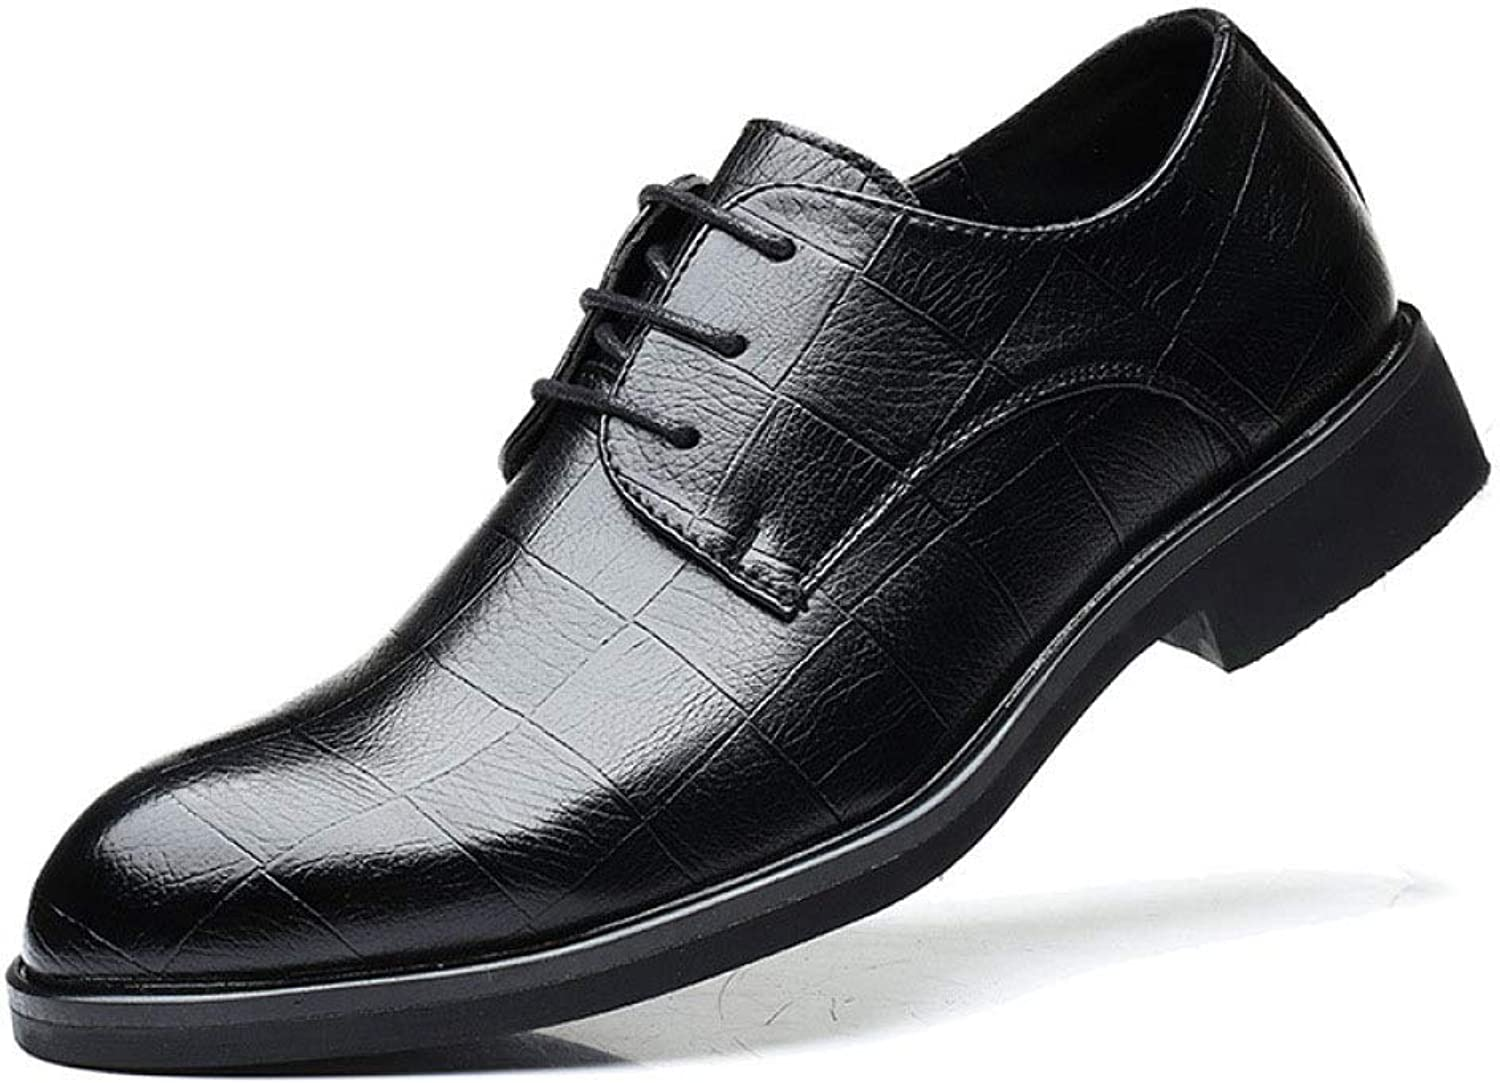 YongBe Men's Leather shoes Lace-ups Platforms Formal Derby Smart shoes Classic Commerce Wedding Party shoes